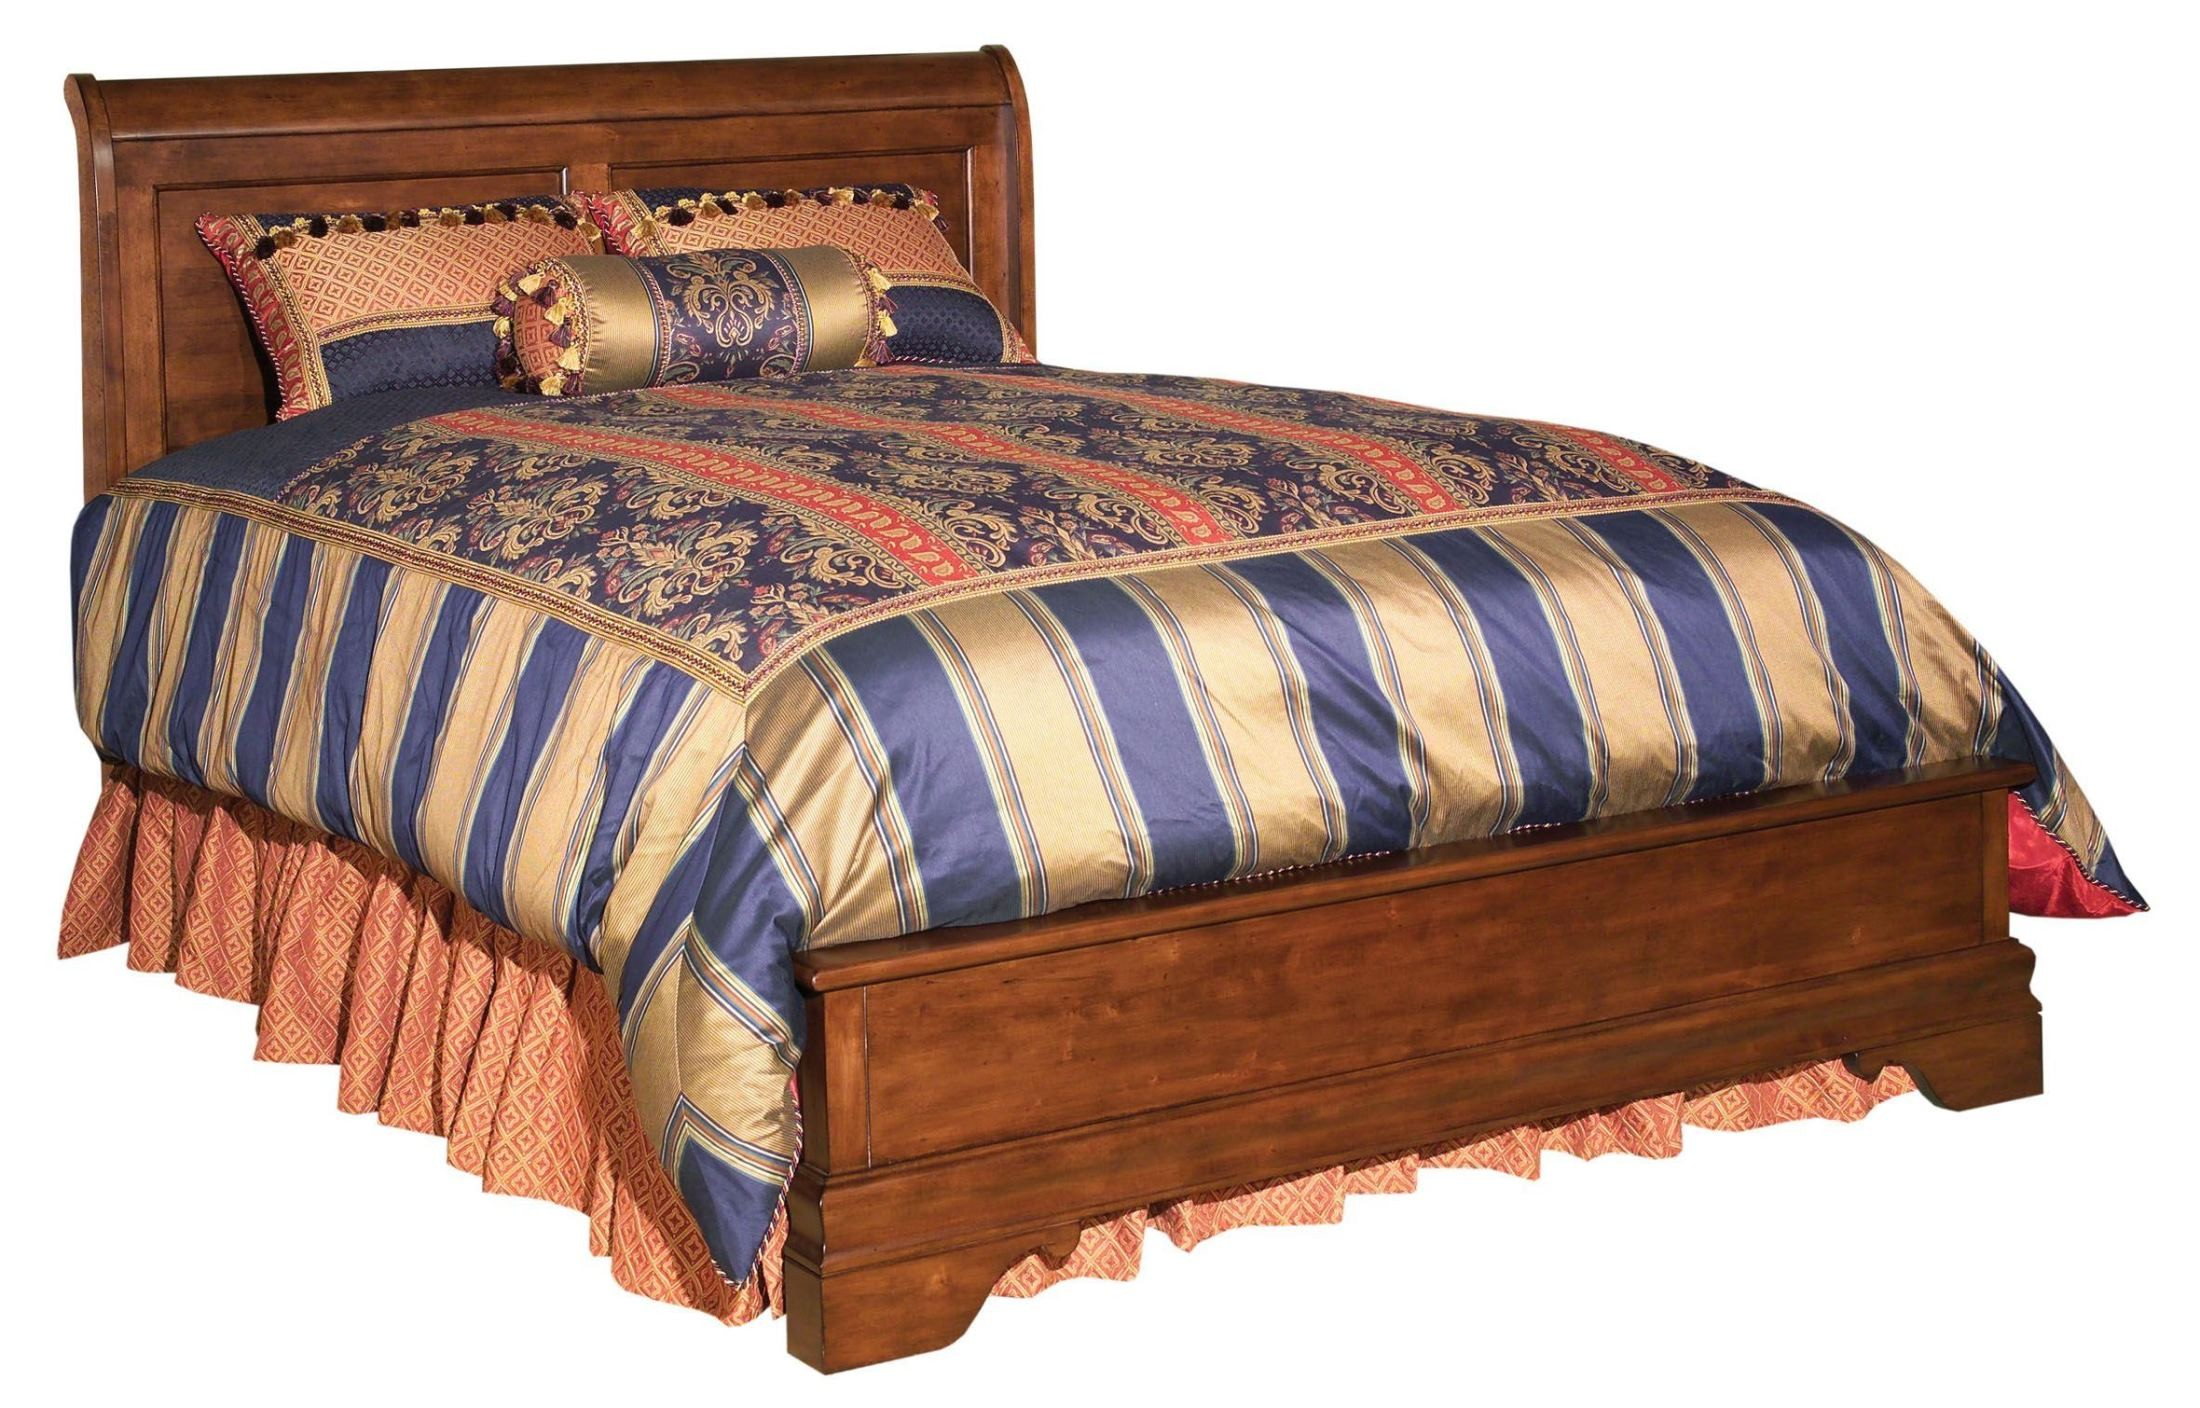 Chateau Royale King Low Profile Bed From Kincaid 53 156p